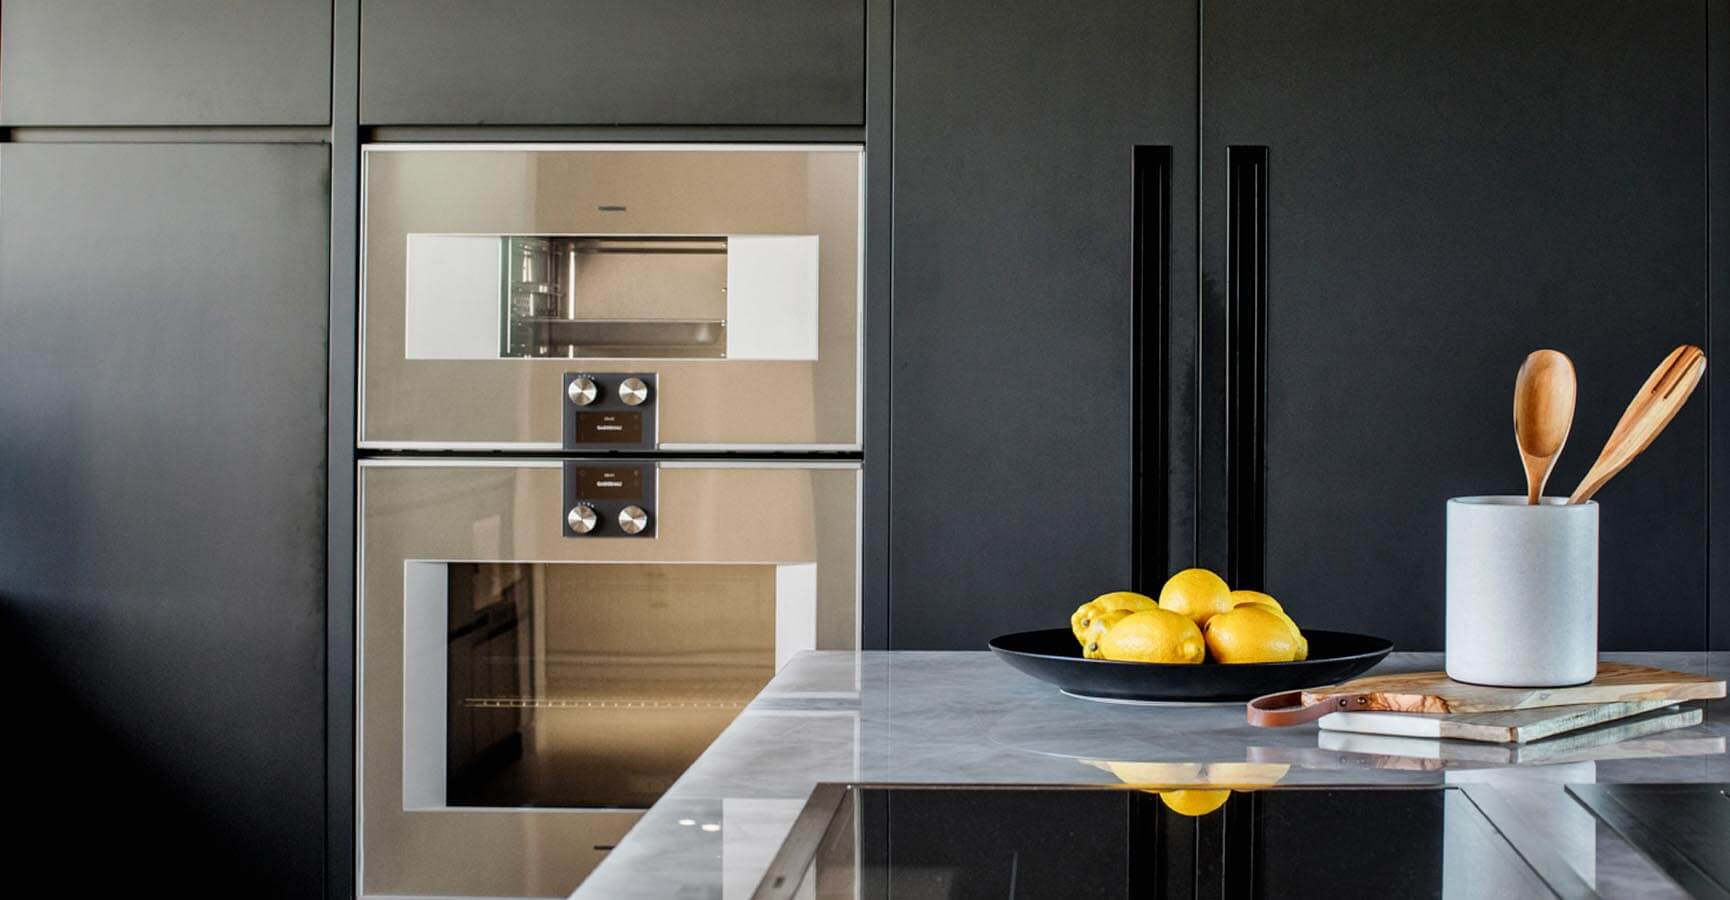 Modern Kitchen Fridge, Stove & Breakfast Bar